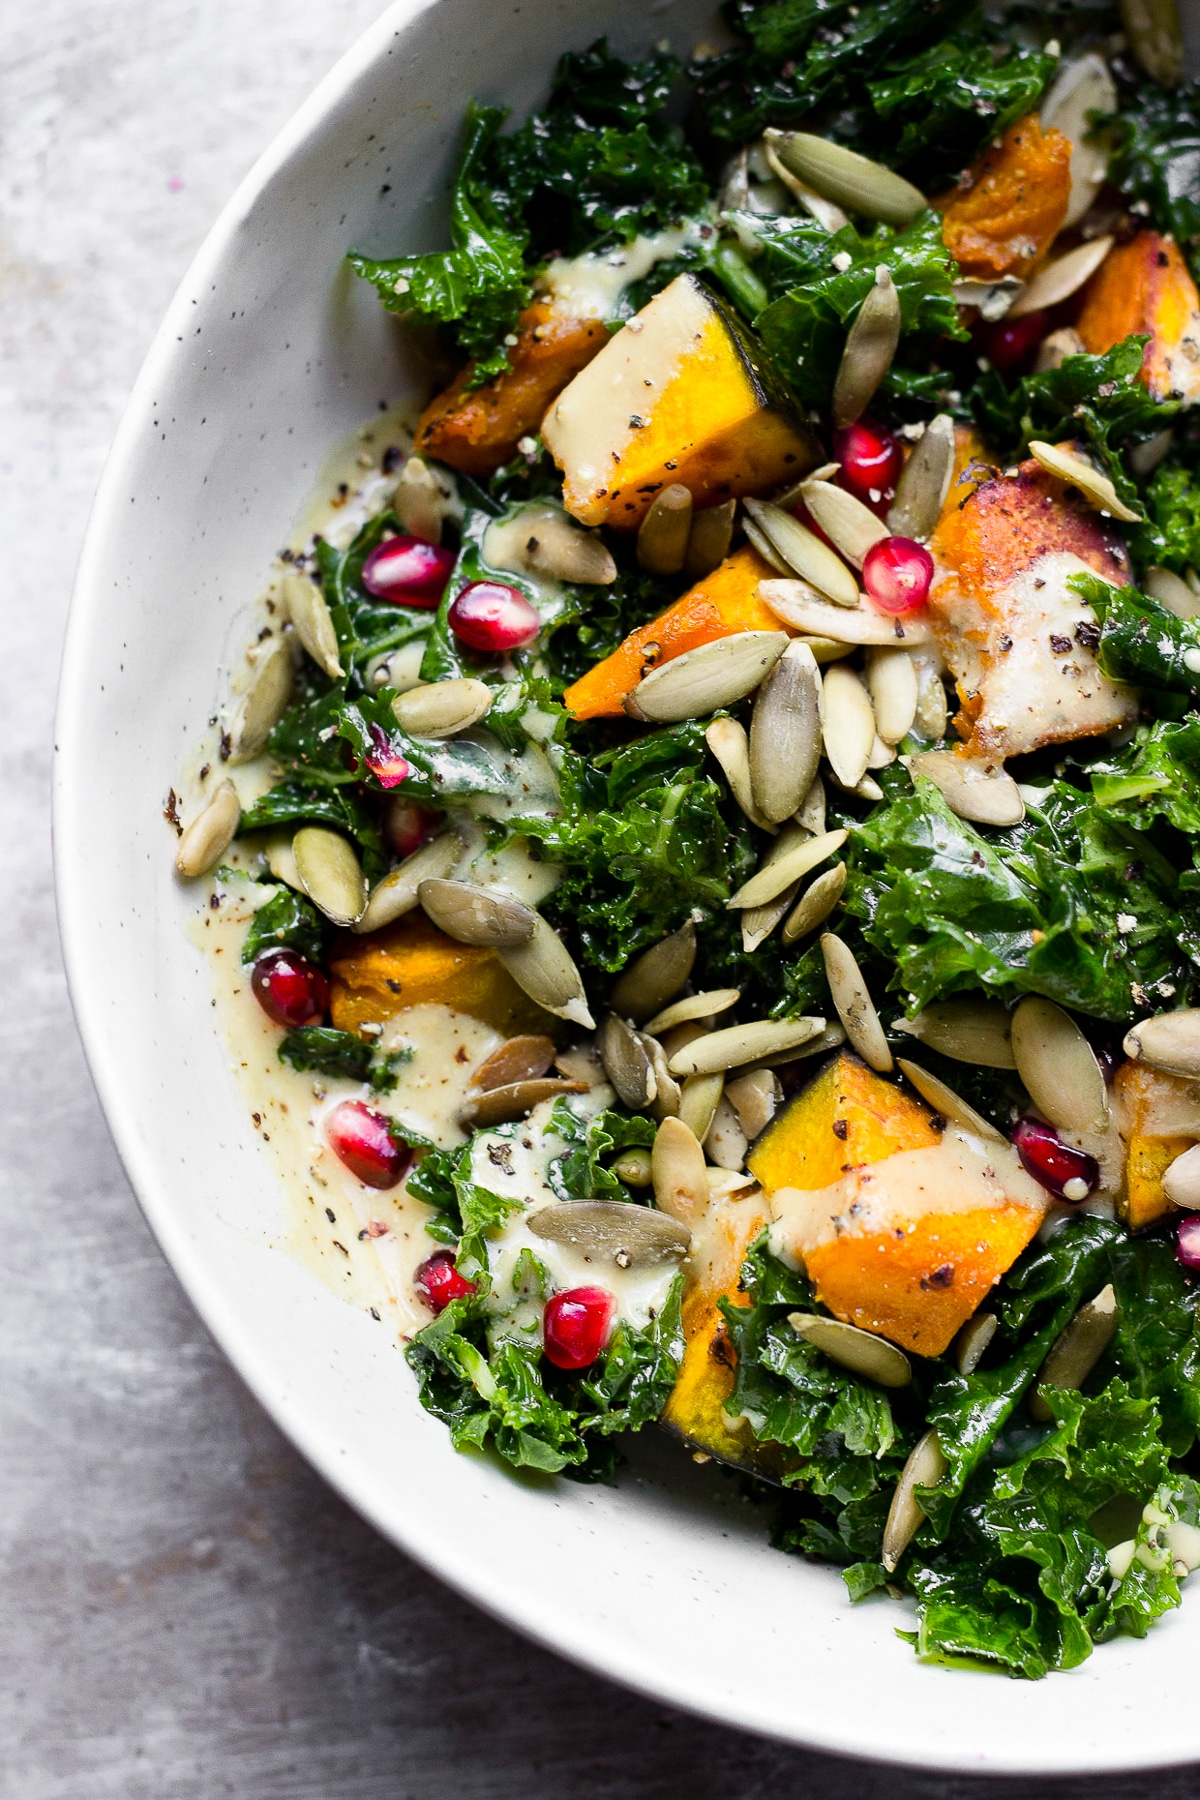 KALE SALAD WITH KABOCHA SQUASH WITH MAPLE DIJON DRESSING